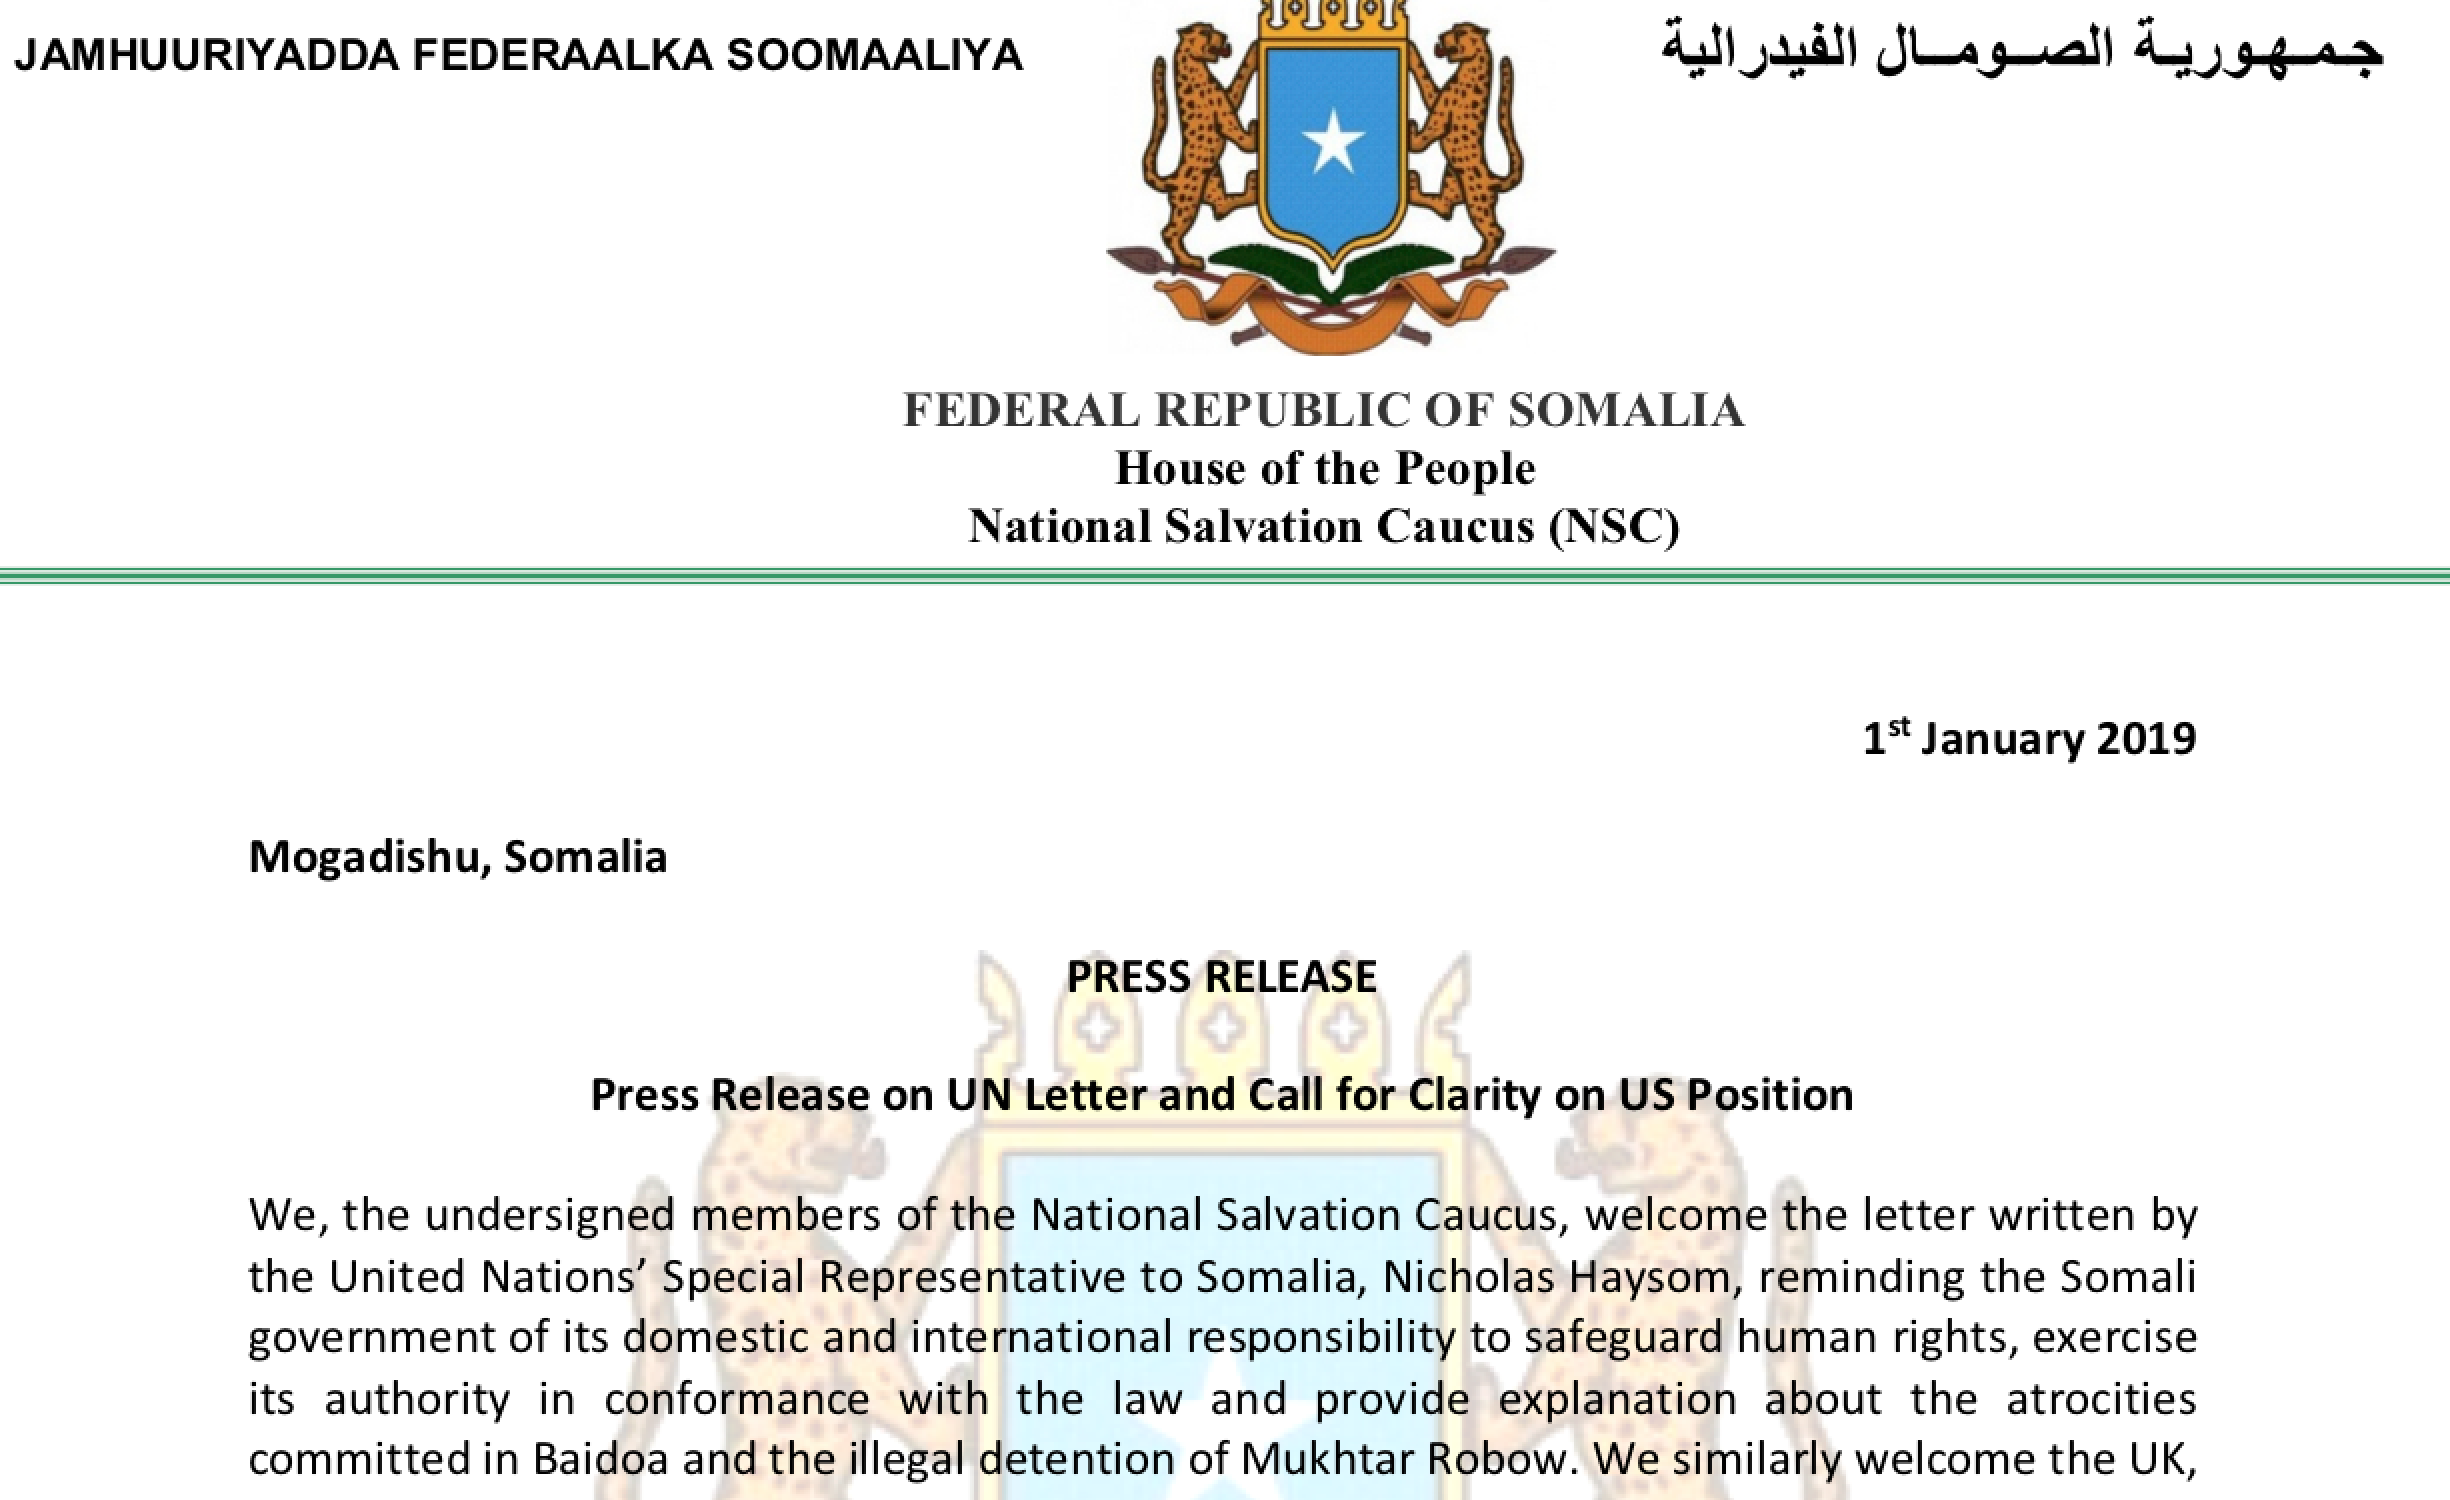 Somalia: Press Release on UN Letter and Call for Clarity on US Position